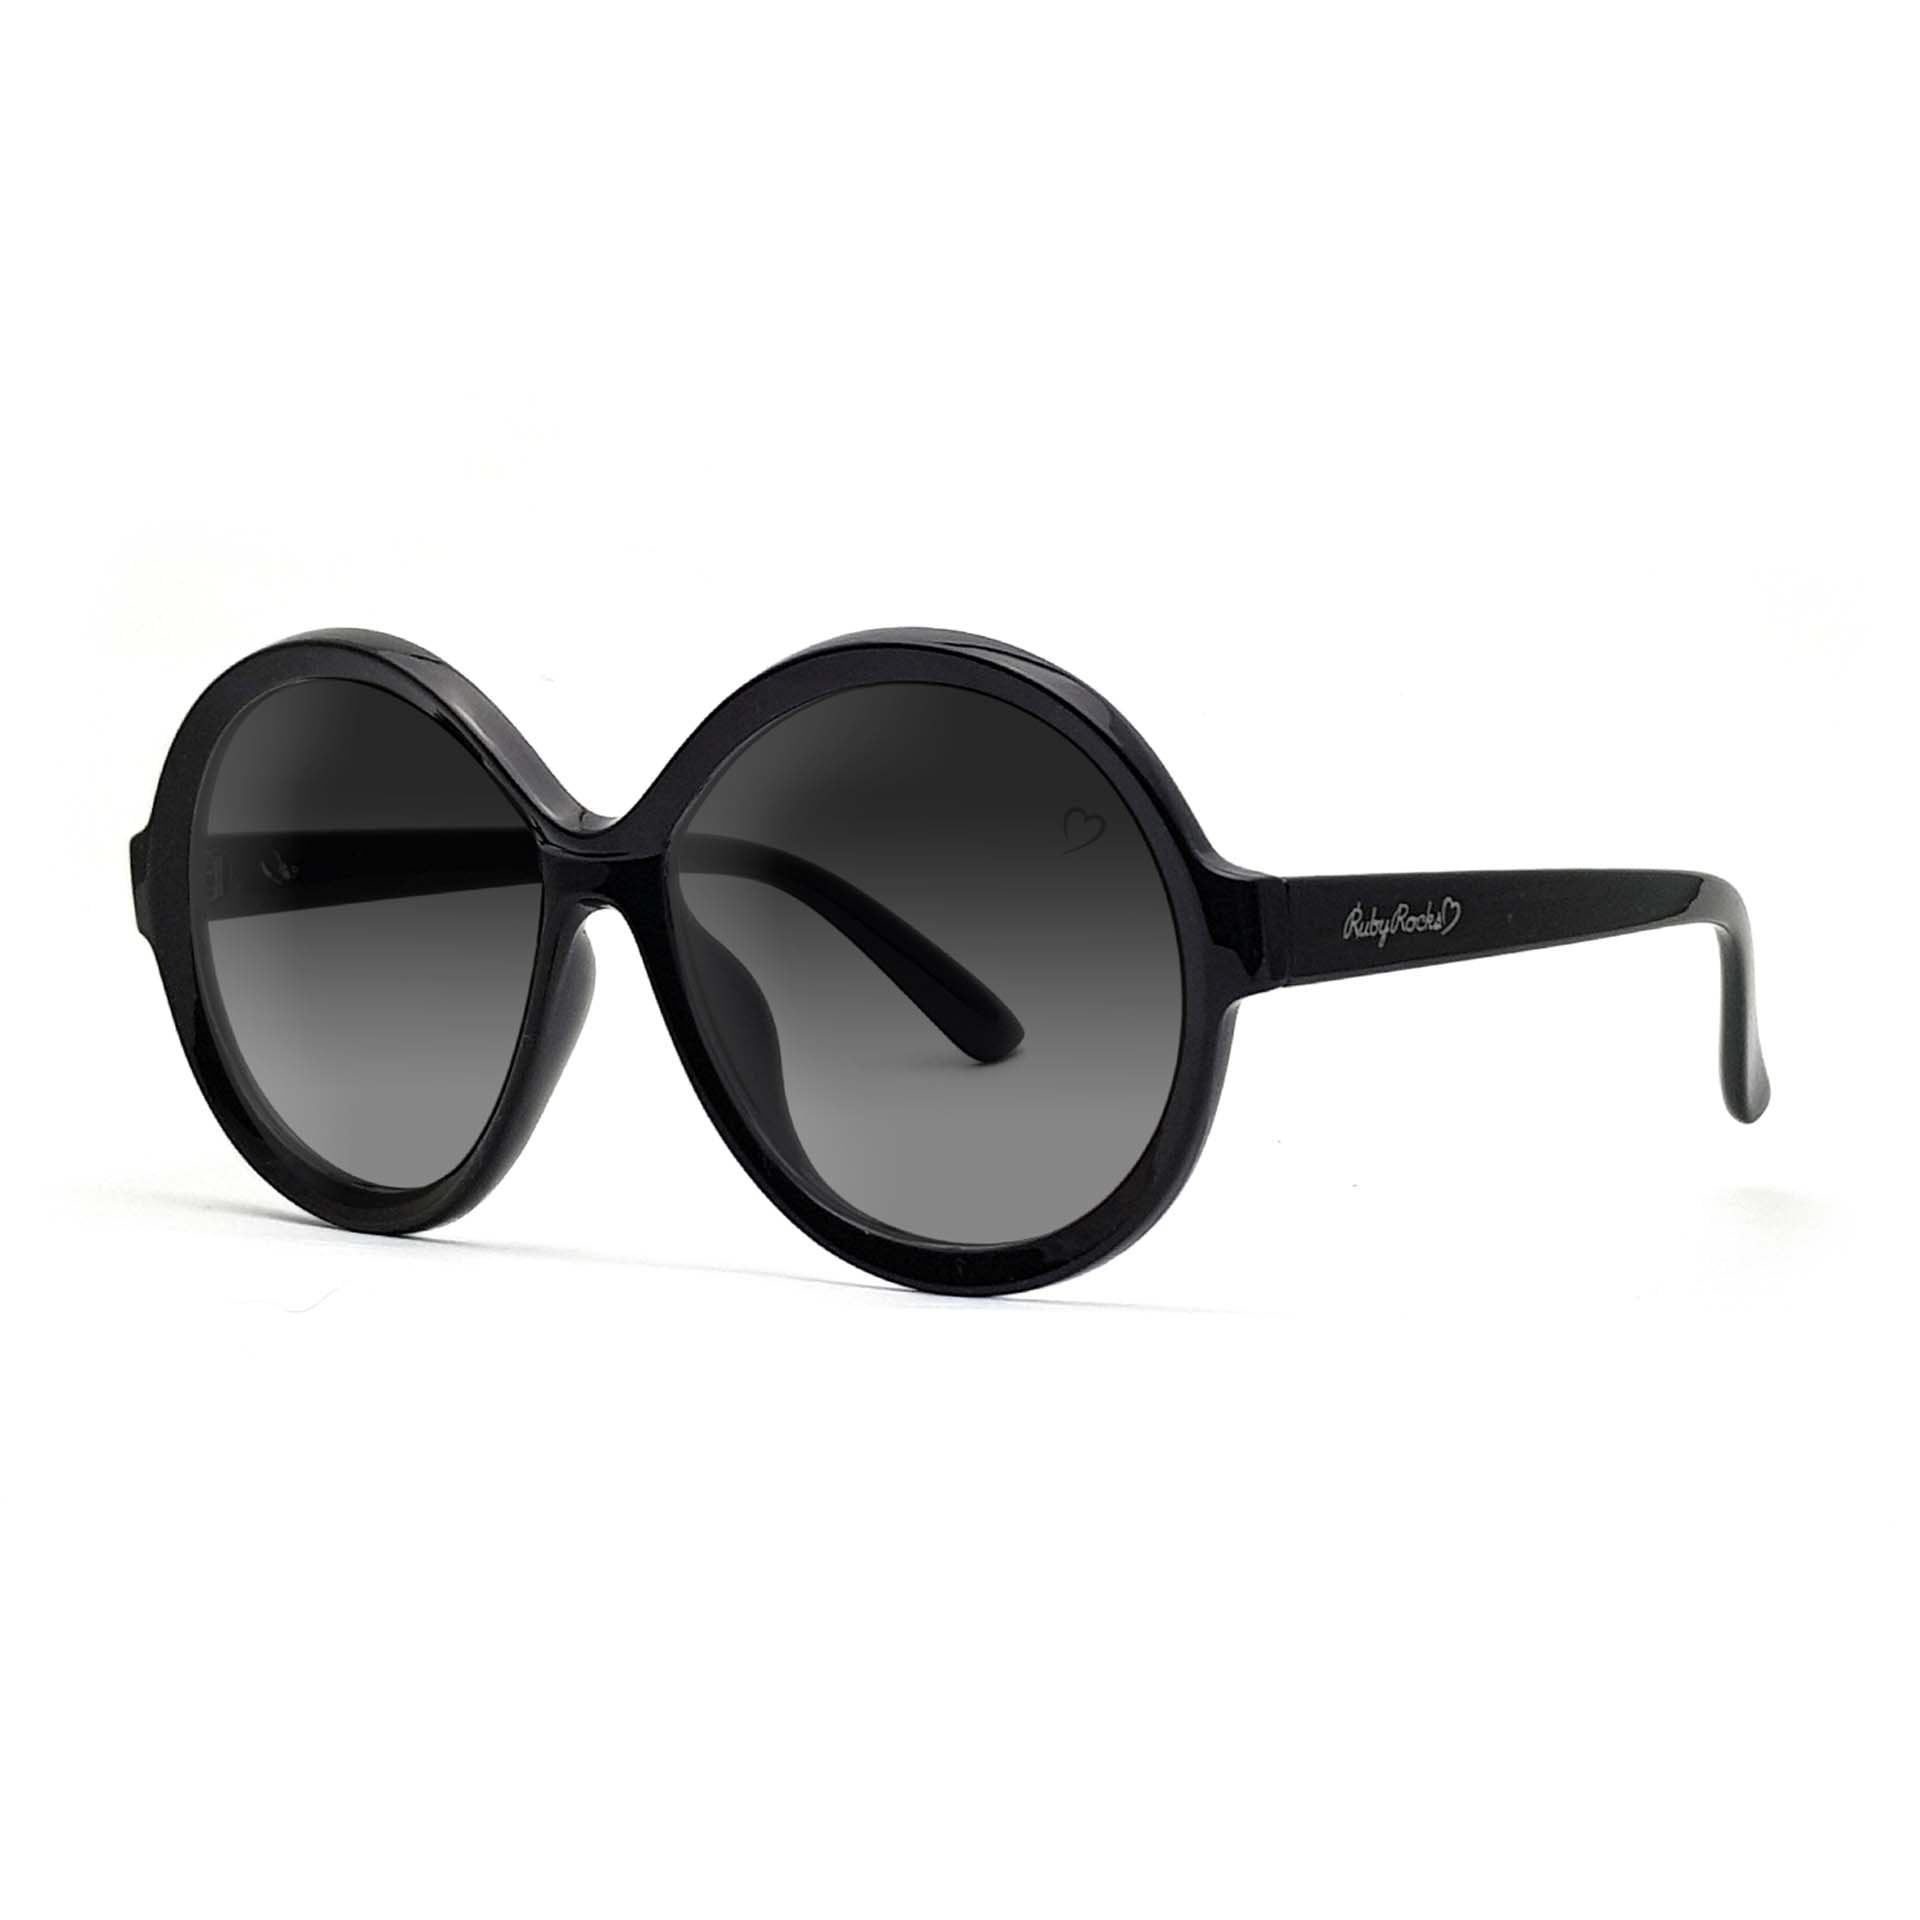 'Jessica Elsie' Round In Black